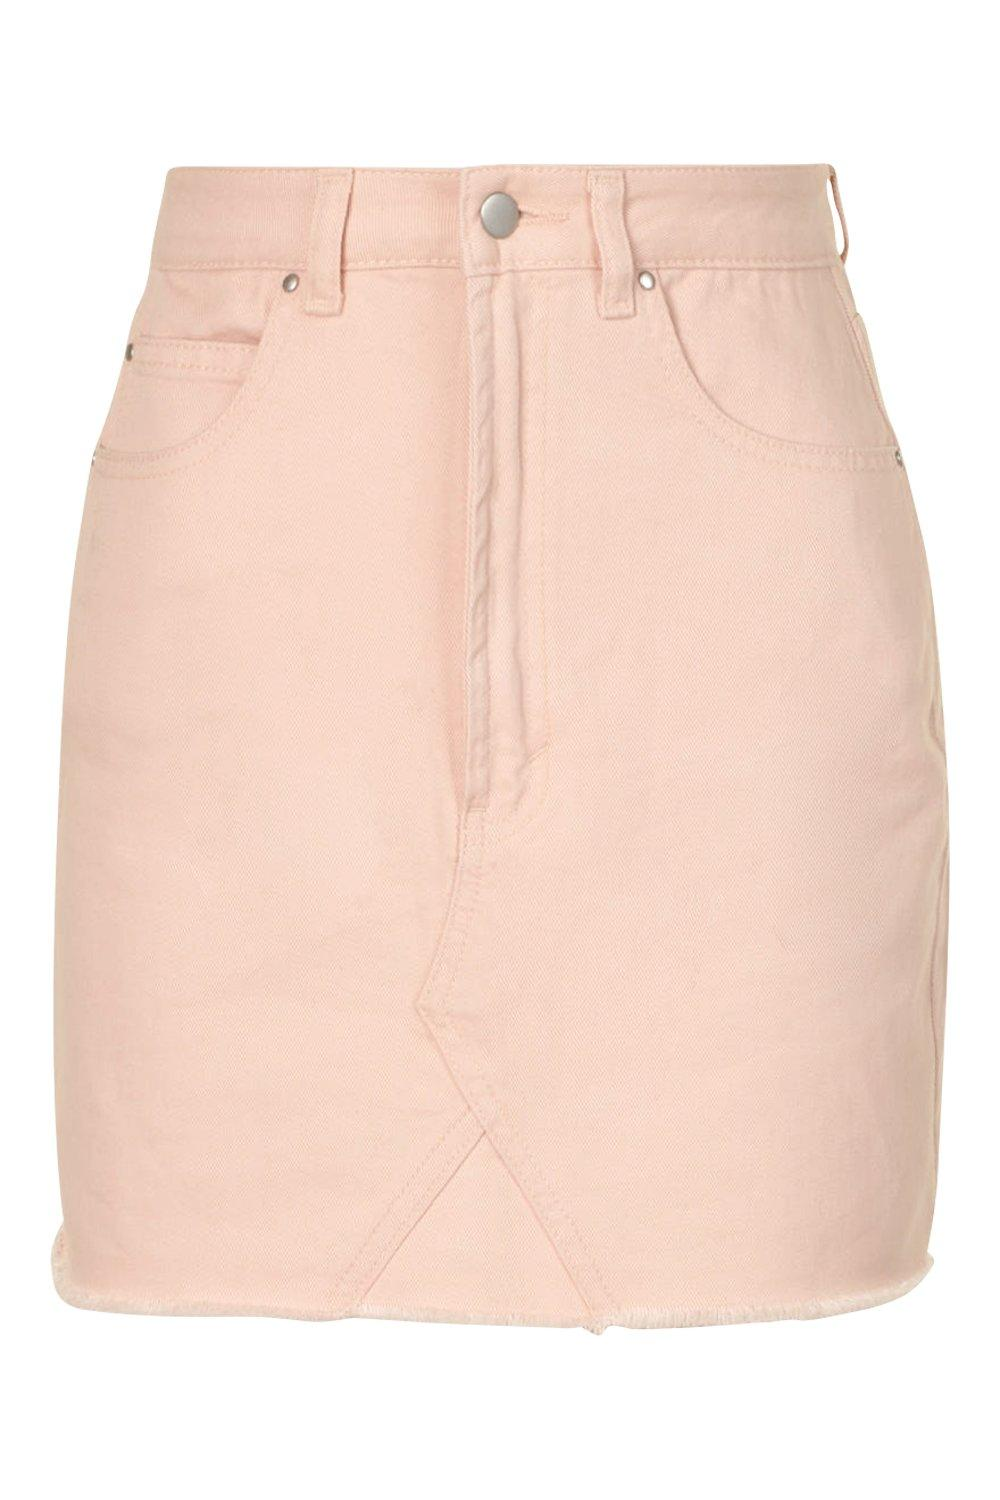 nude Hem Frayed Skirt Denim Nude TnIY4HqSn